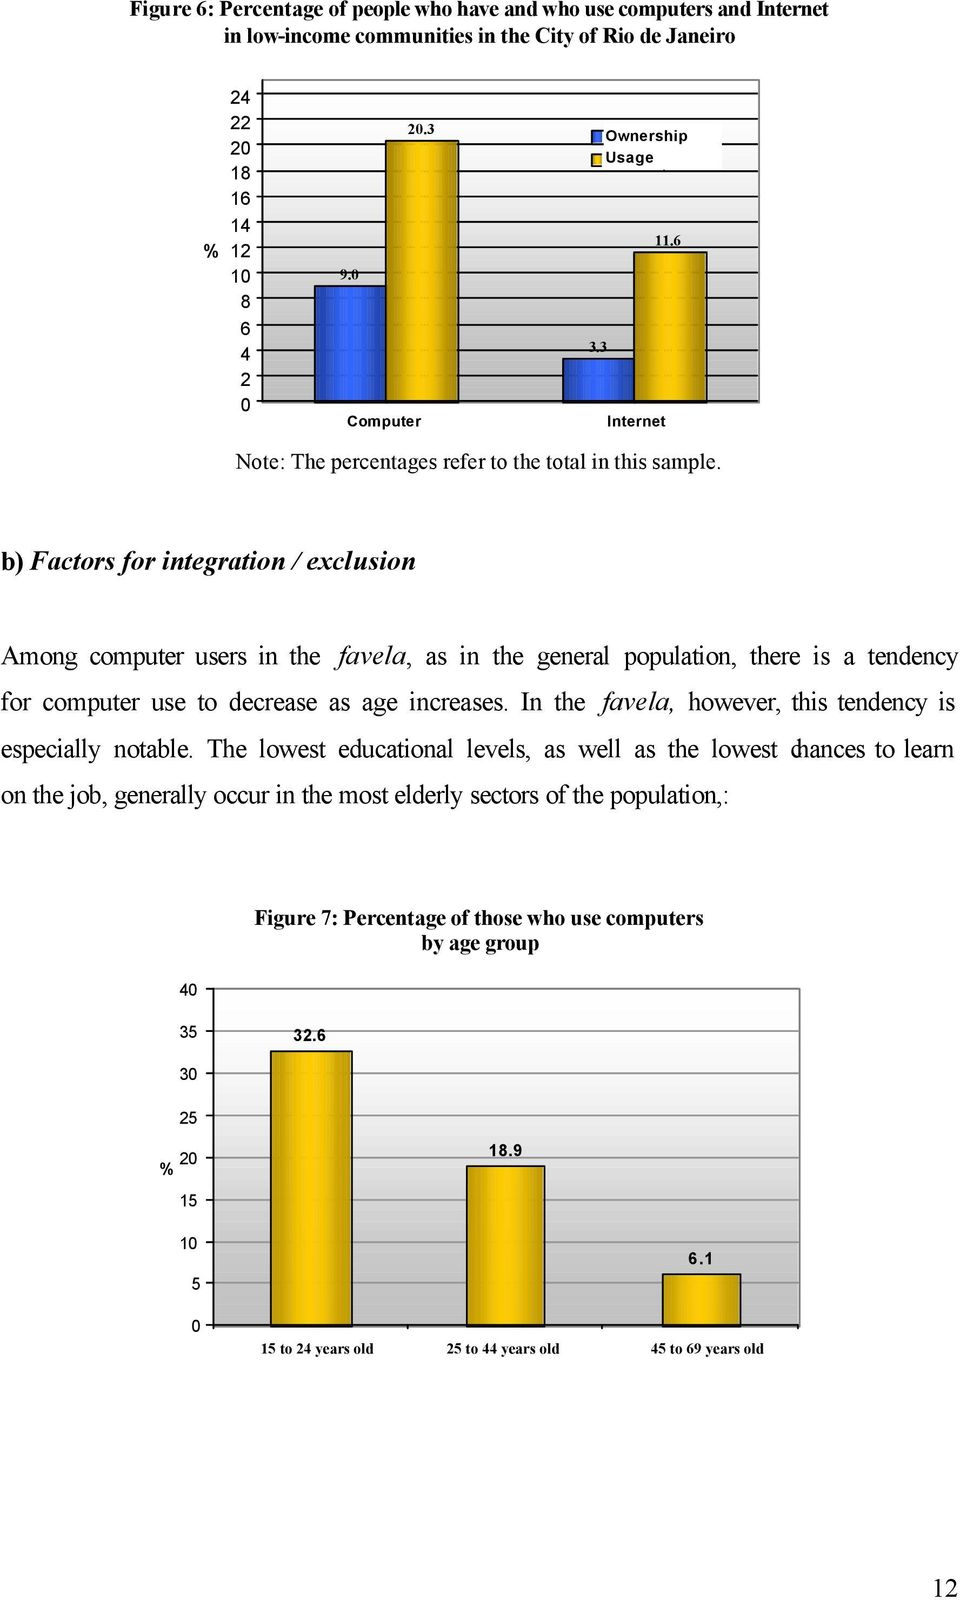 b) Factors for integration / exclusion Among computer users in the favela, as in the general population, there is a tendency for computer use to decrease as age increases.